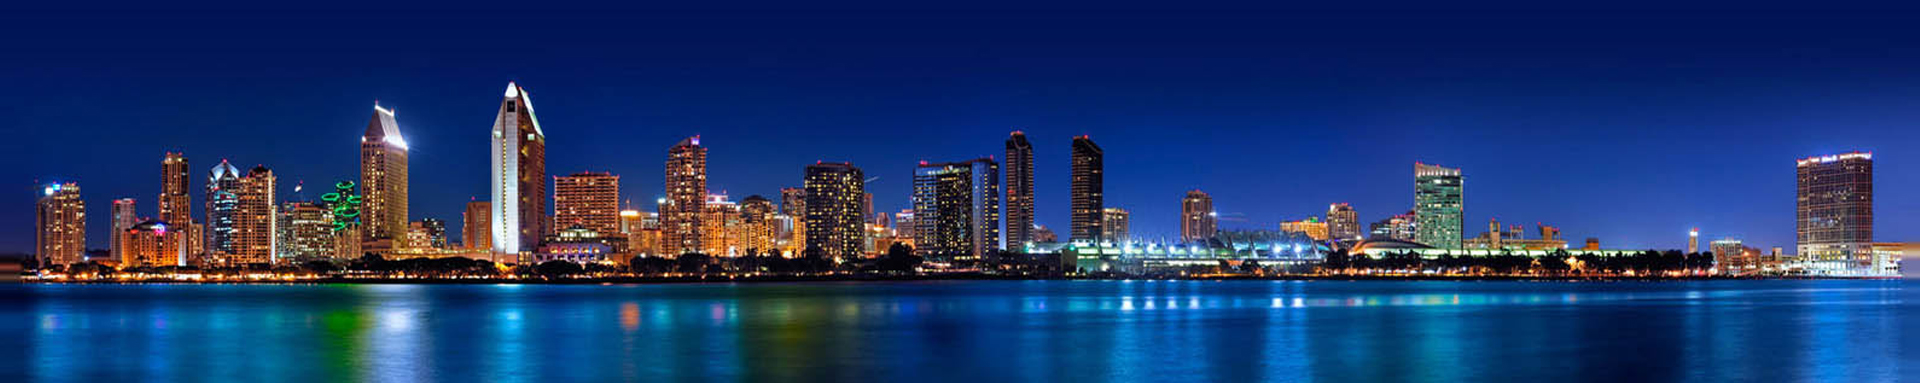 Dubai Properties for Sale - Dubai Real Estate Company